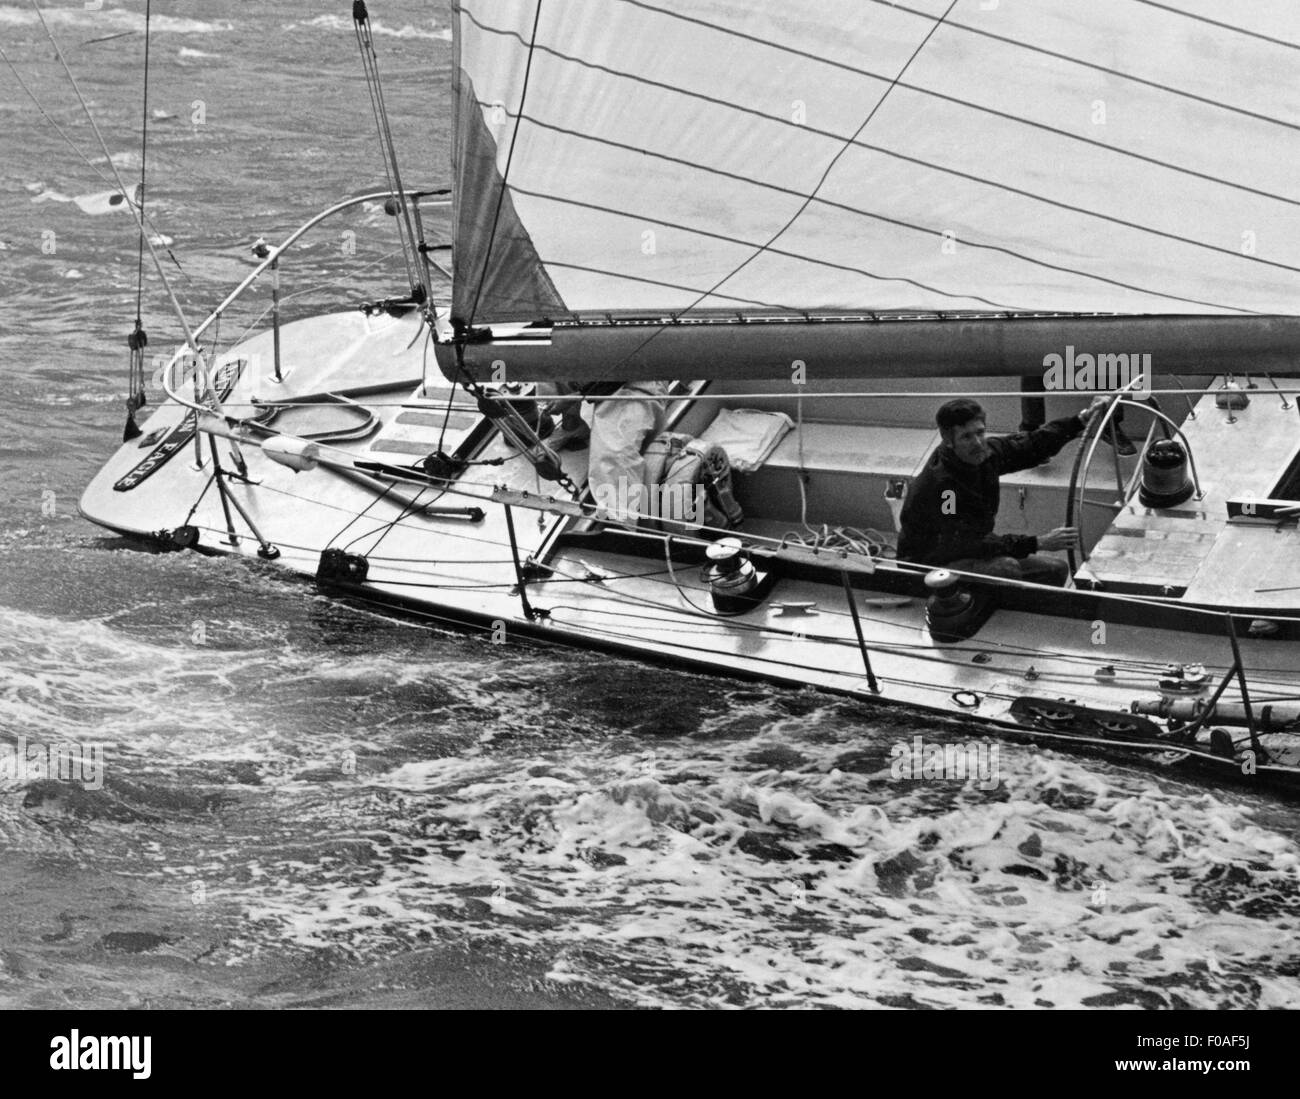 AJAXNETPHOTO - AUGUST, 1971. COWES, ENGLAND. - FASTNET RACE - TED TURNER AT THE HELM OF THE CONVERTED 12M YACHT - Stock Image